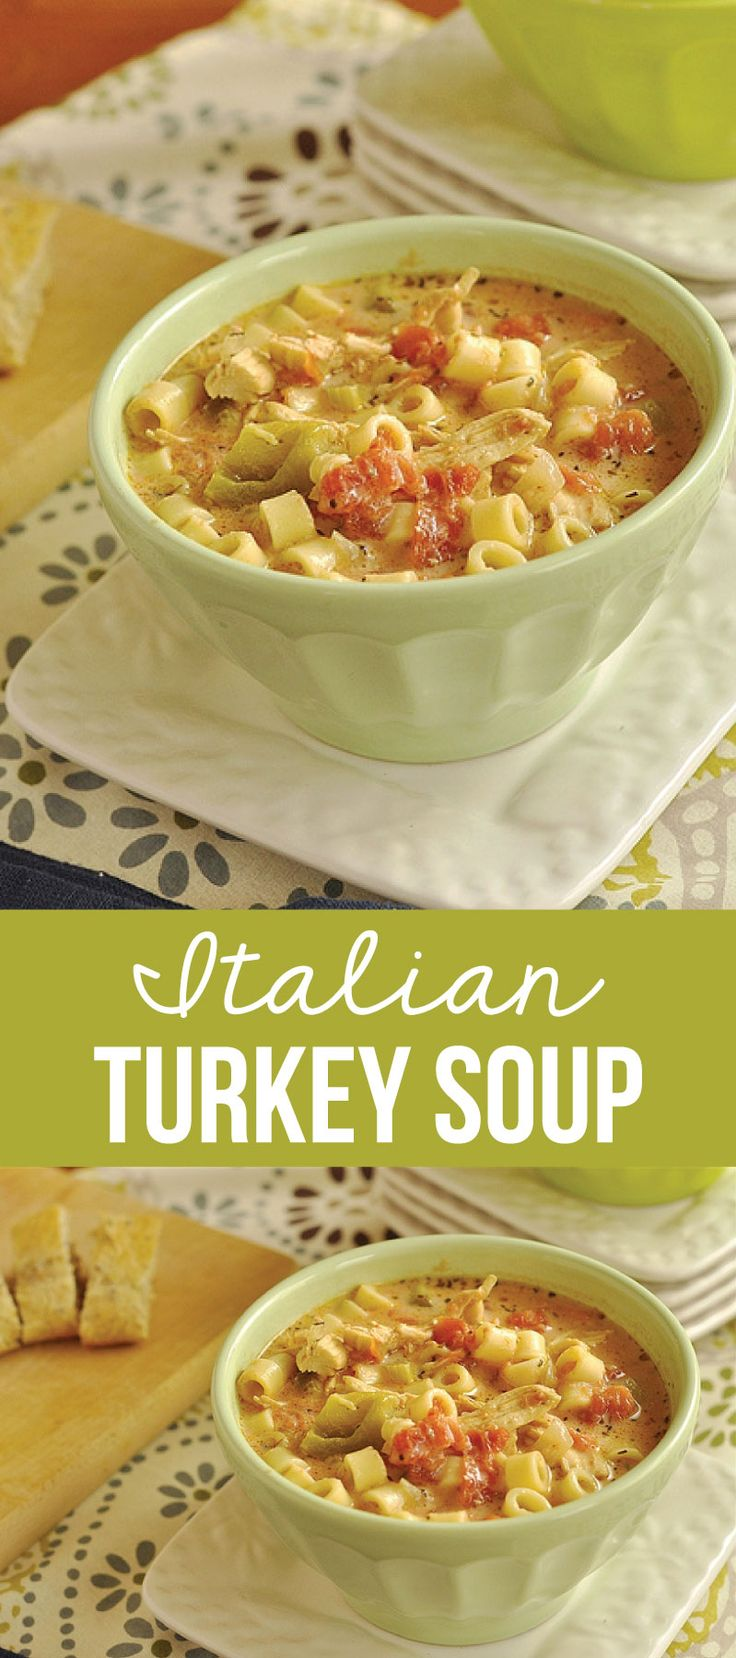 This Italian Turkey Soup is an easy and delicious way to use up your leftover turkey. And it can also be made with chicken!via www.thirtyhandmadedays.com